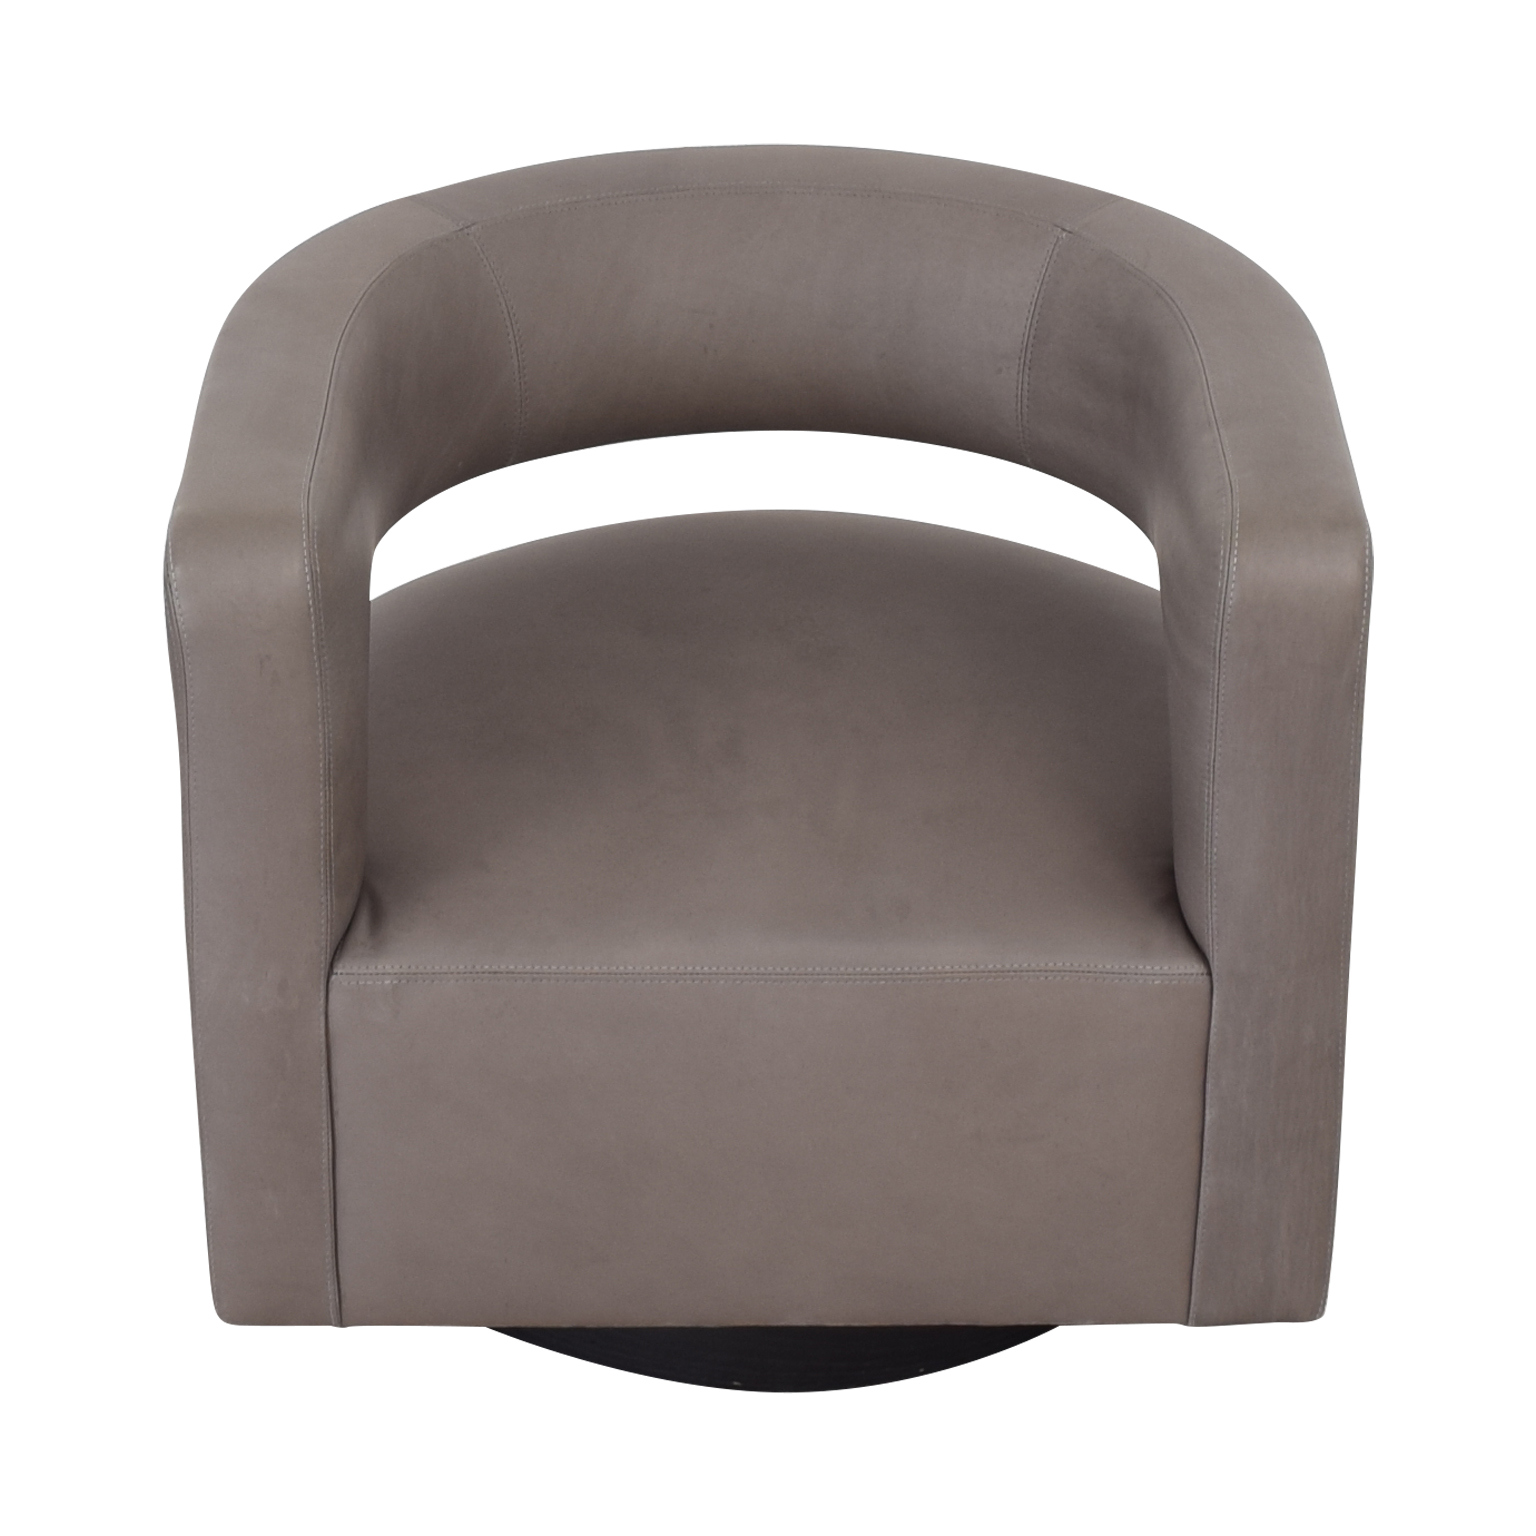 Restoration Hardware Restoration Hardware Drew Curved Leather Swivel Chair second hand